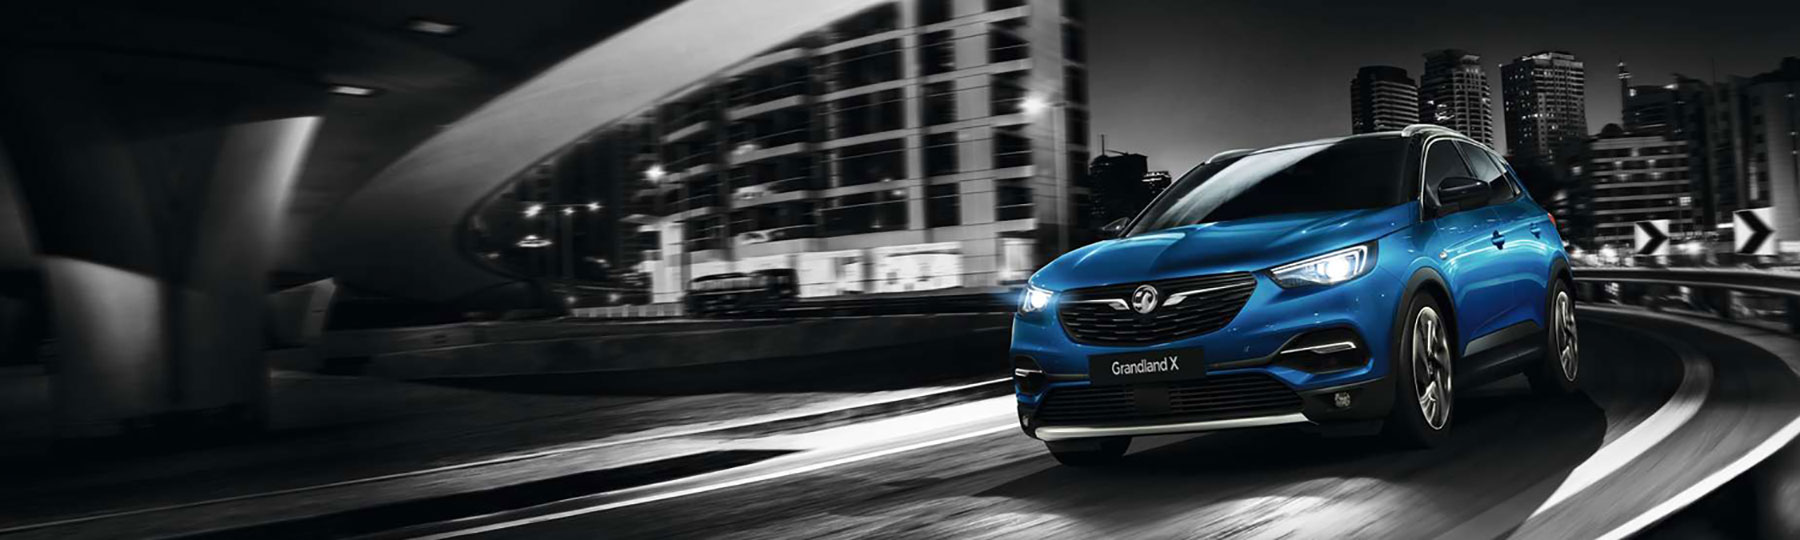 New GRANDLAND X Personal Contract Hire Offer